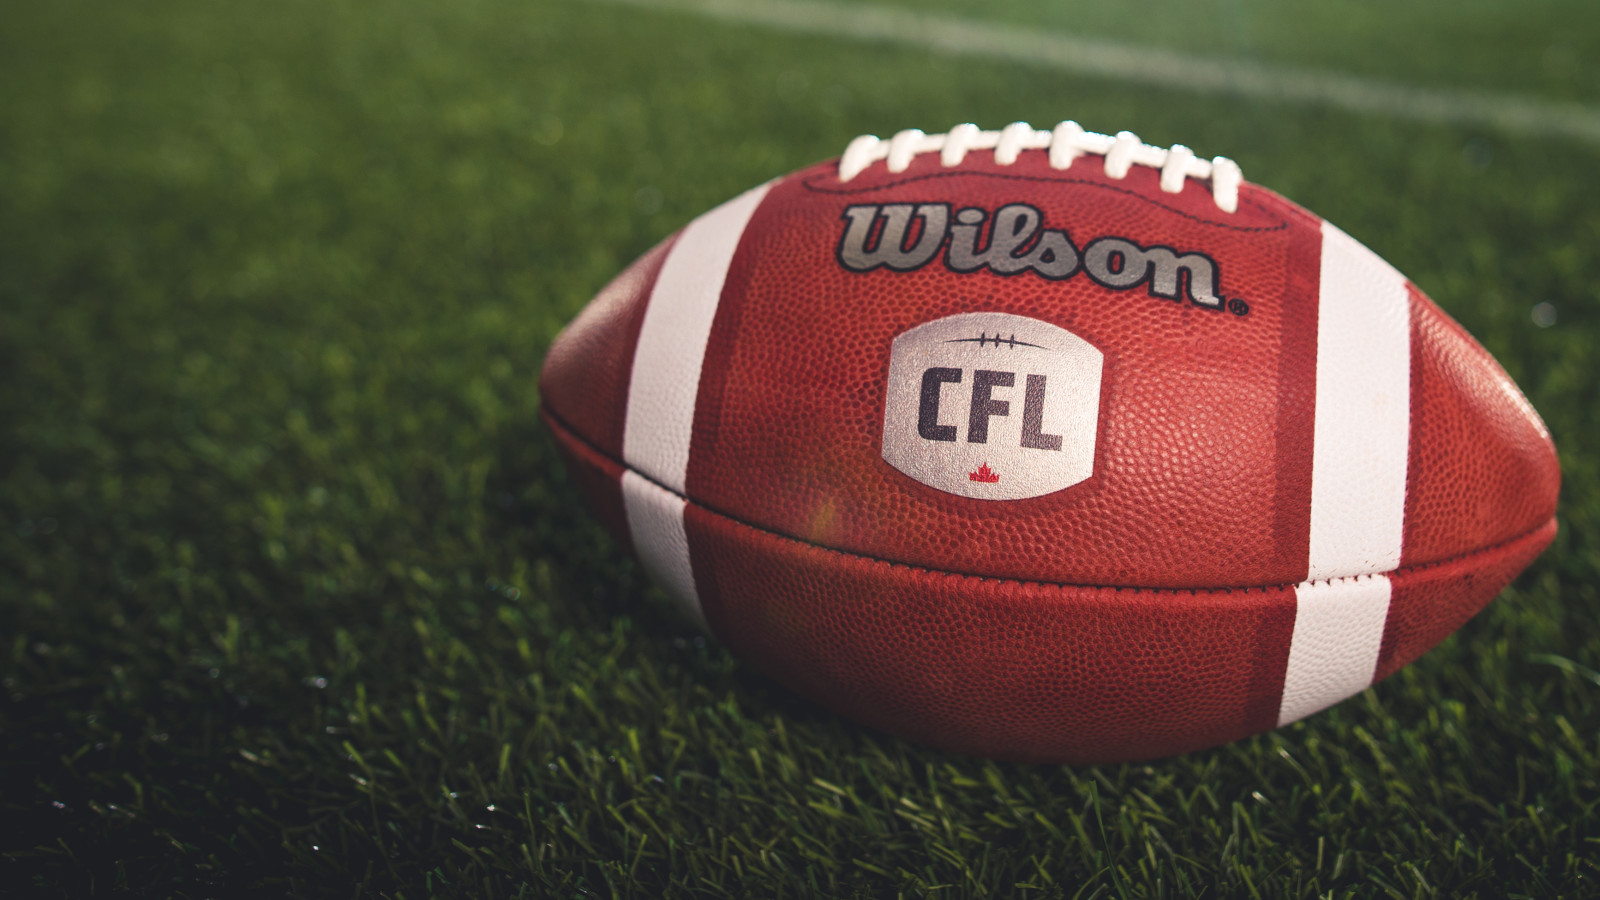 18 into 21 – the CFL extends the season to improve player safety.